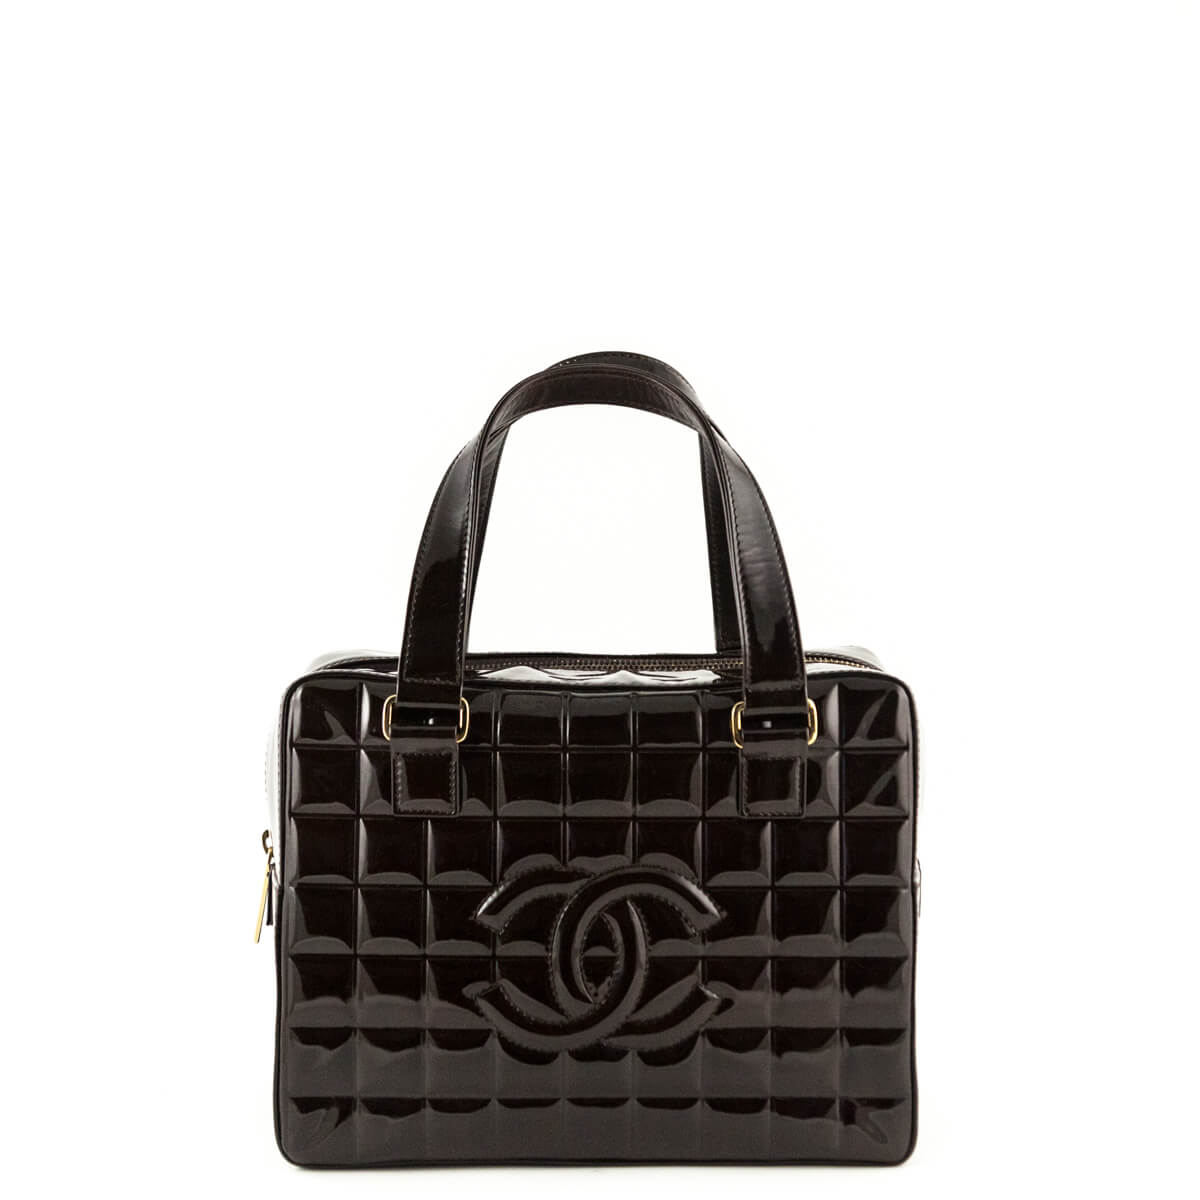 35ccdb4a6a9b Chanel Brown Patent Leather Chocolate Bar Tote - LOVE that BAG - Preowned  Authentic Designer Handbags ...